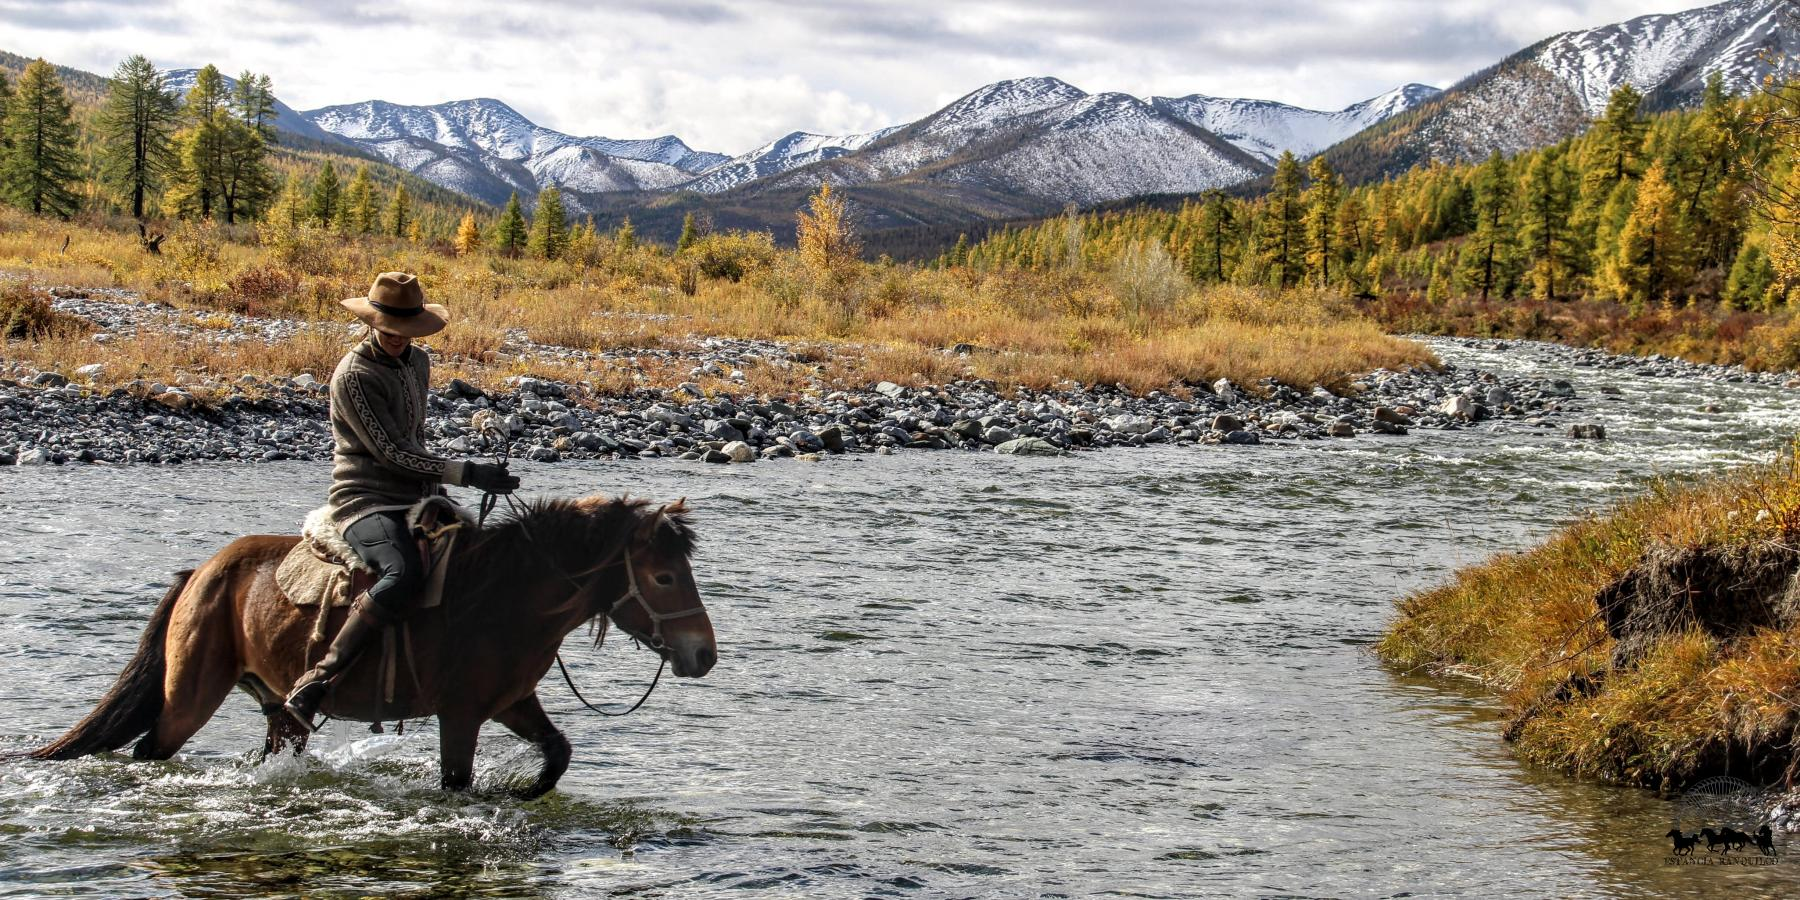 Woman crossing river on horseback in Mongolia with Estancia Ranquilco